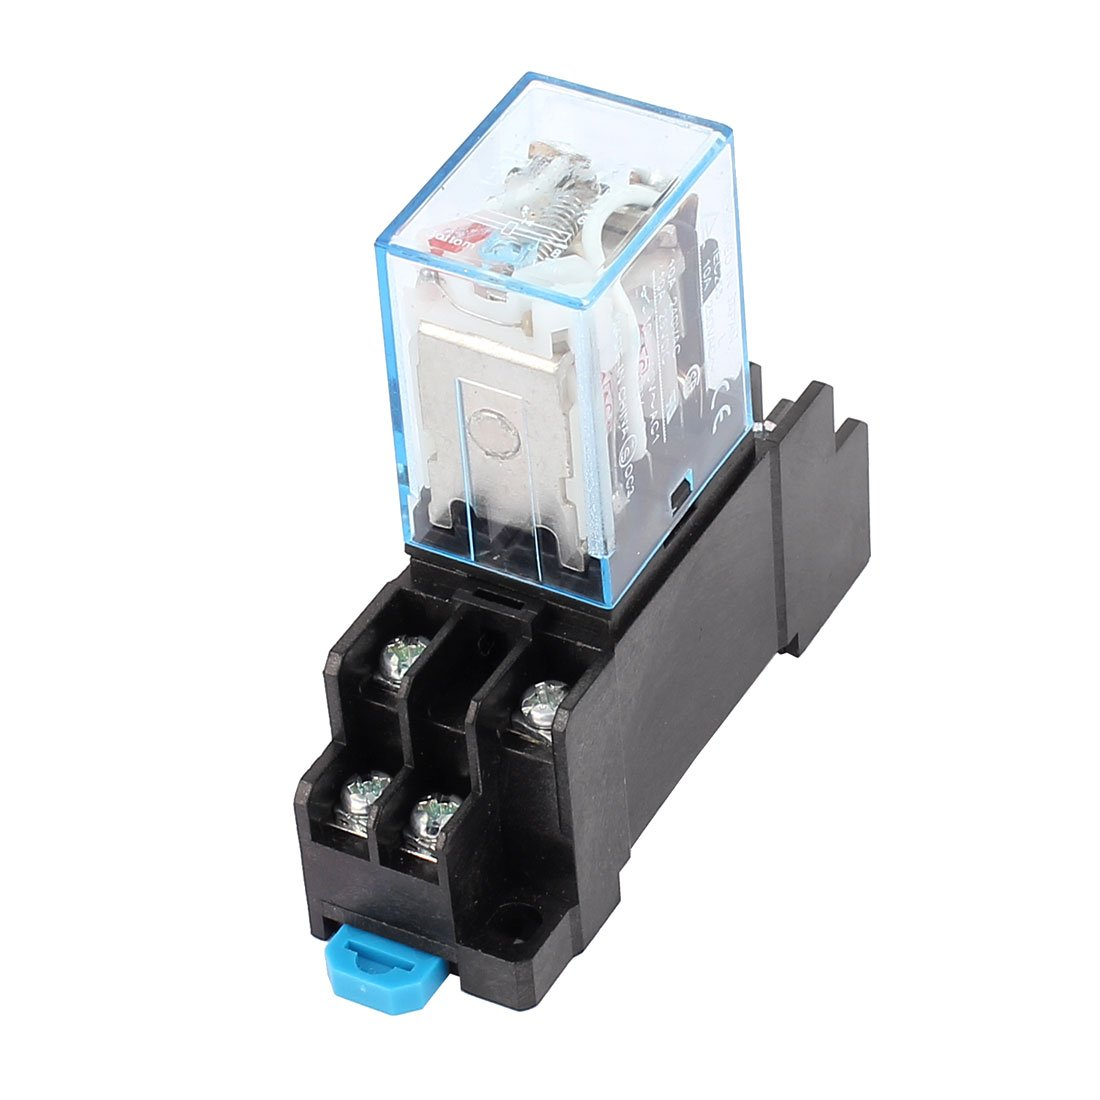 uxcell AC 110/120V Coil 8 Pin DPDT Electromagnetic Power Relay w Socket Base a16032300ux1217